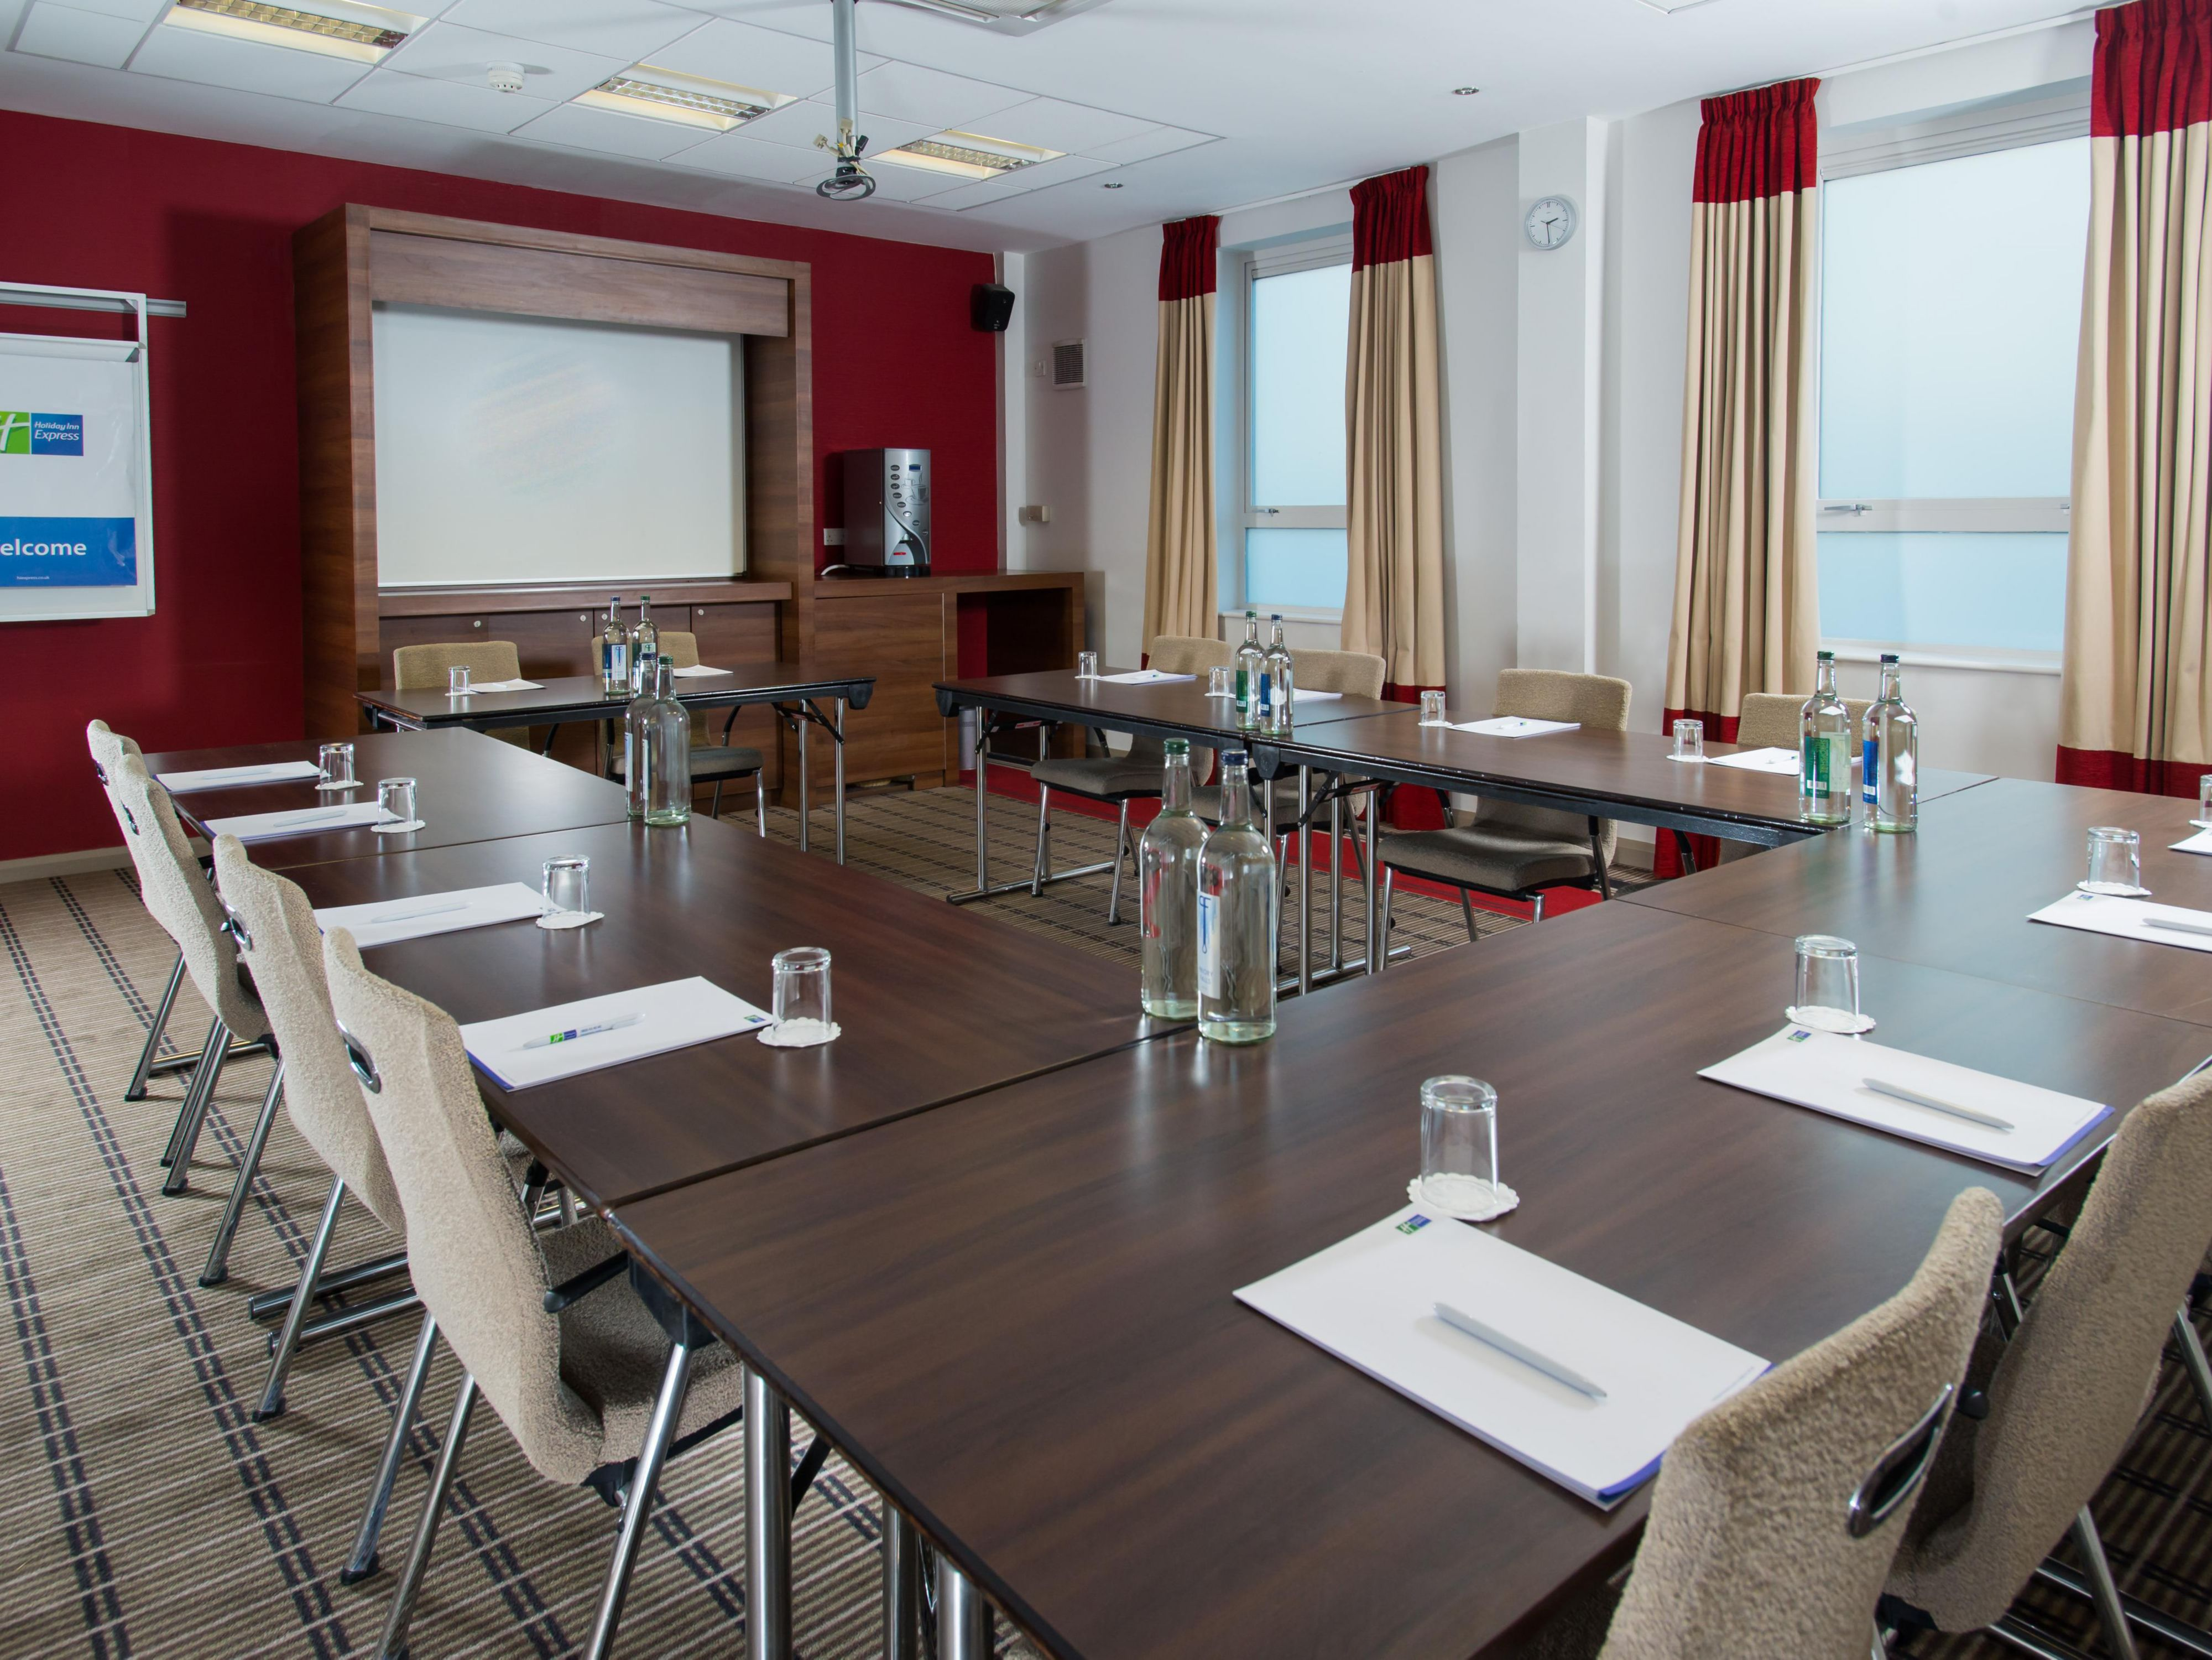 Our Meeting Rooms have plenty of natural daylight